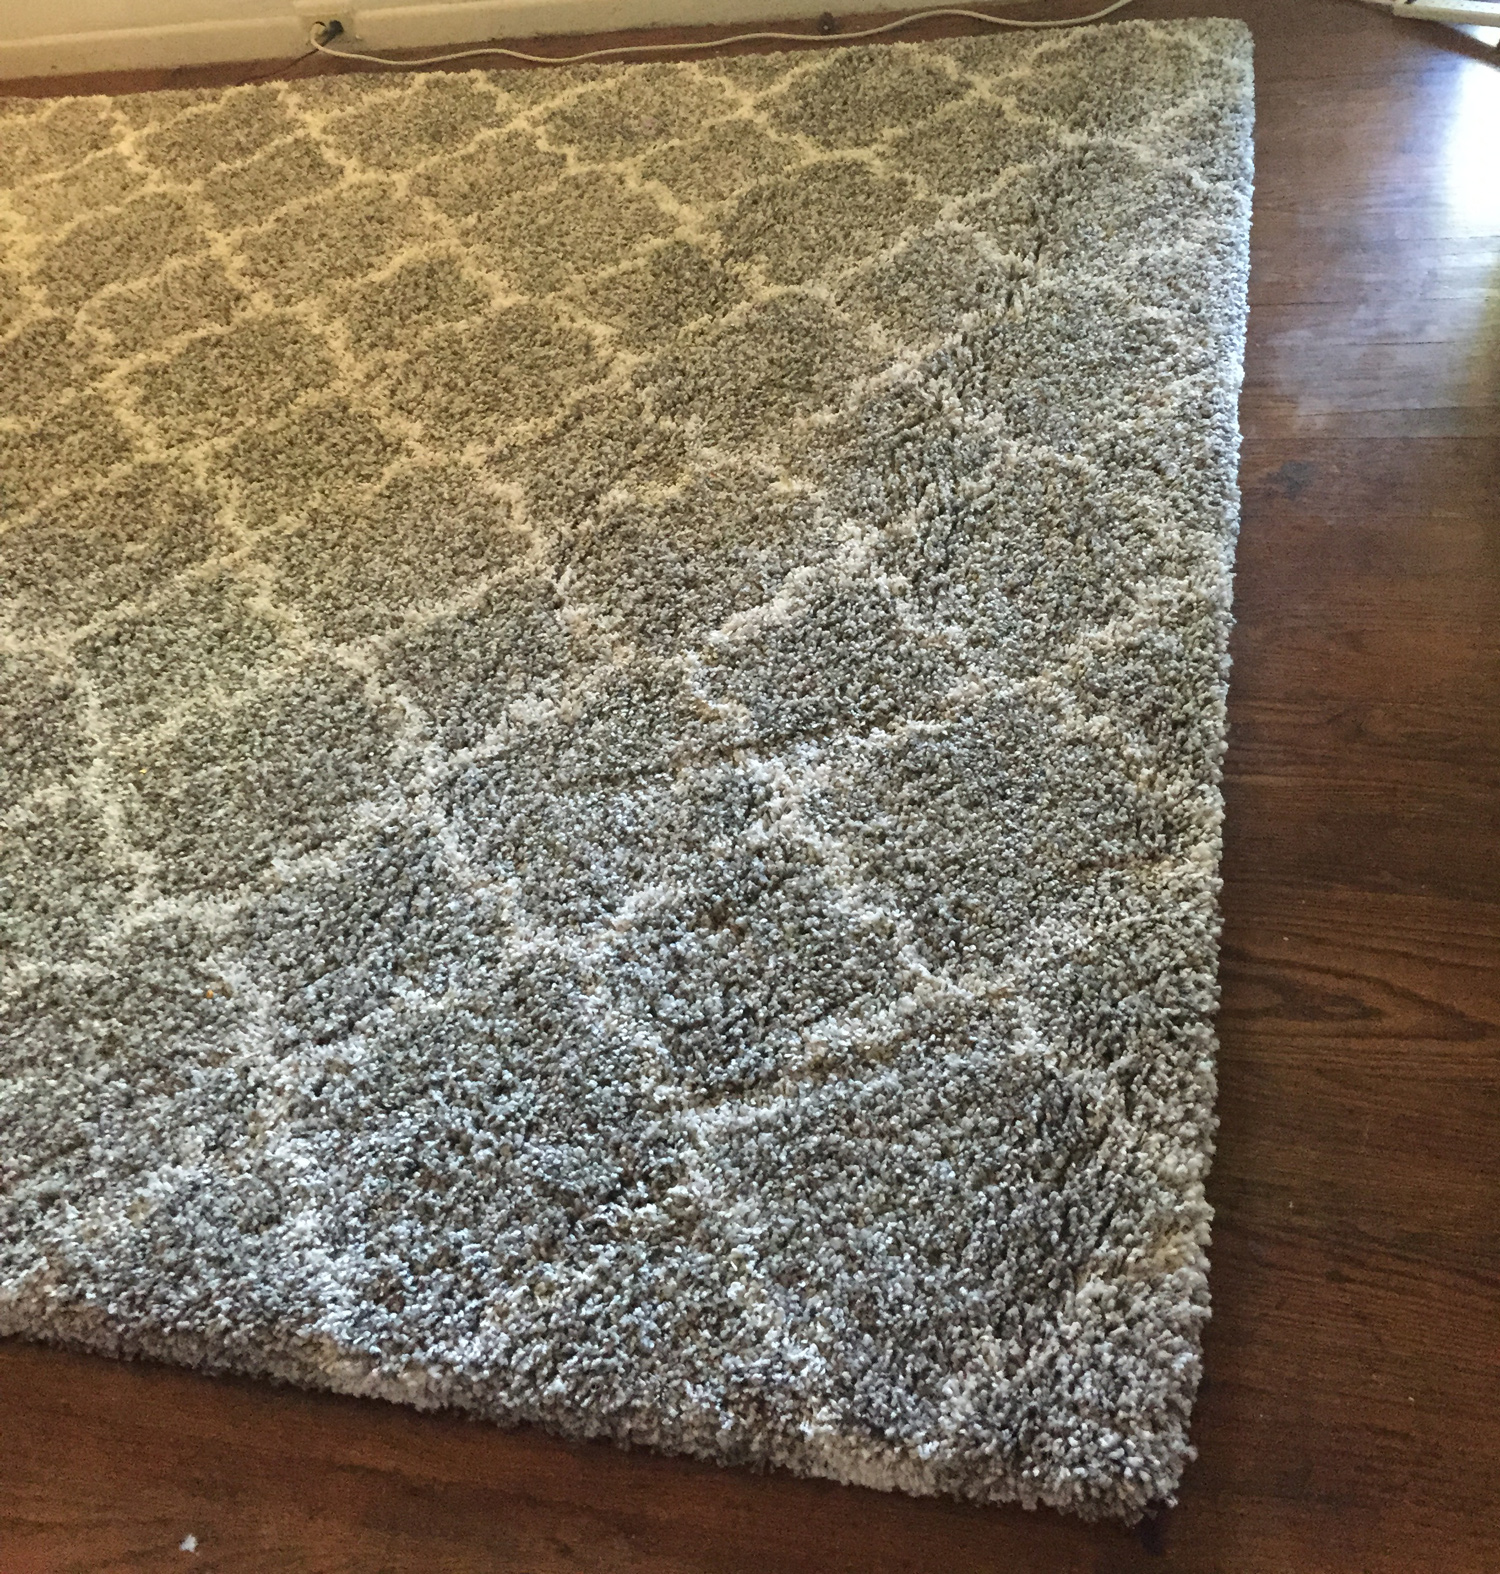 how to clean dog urine from carpet padding